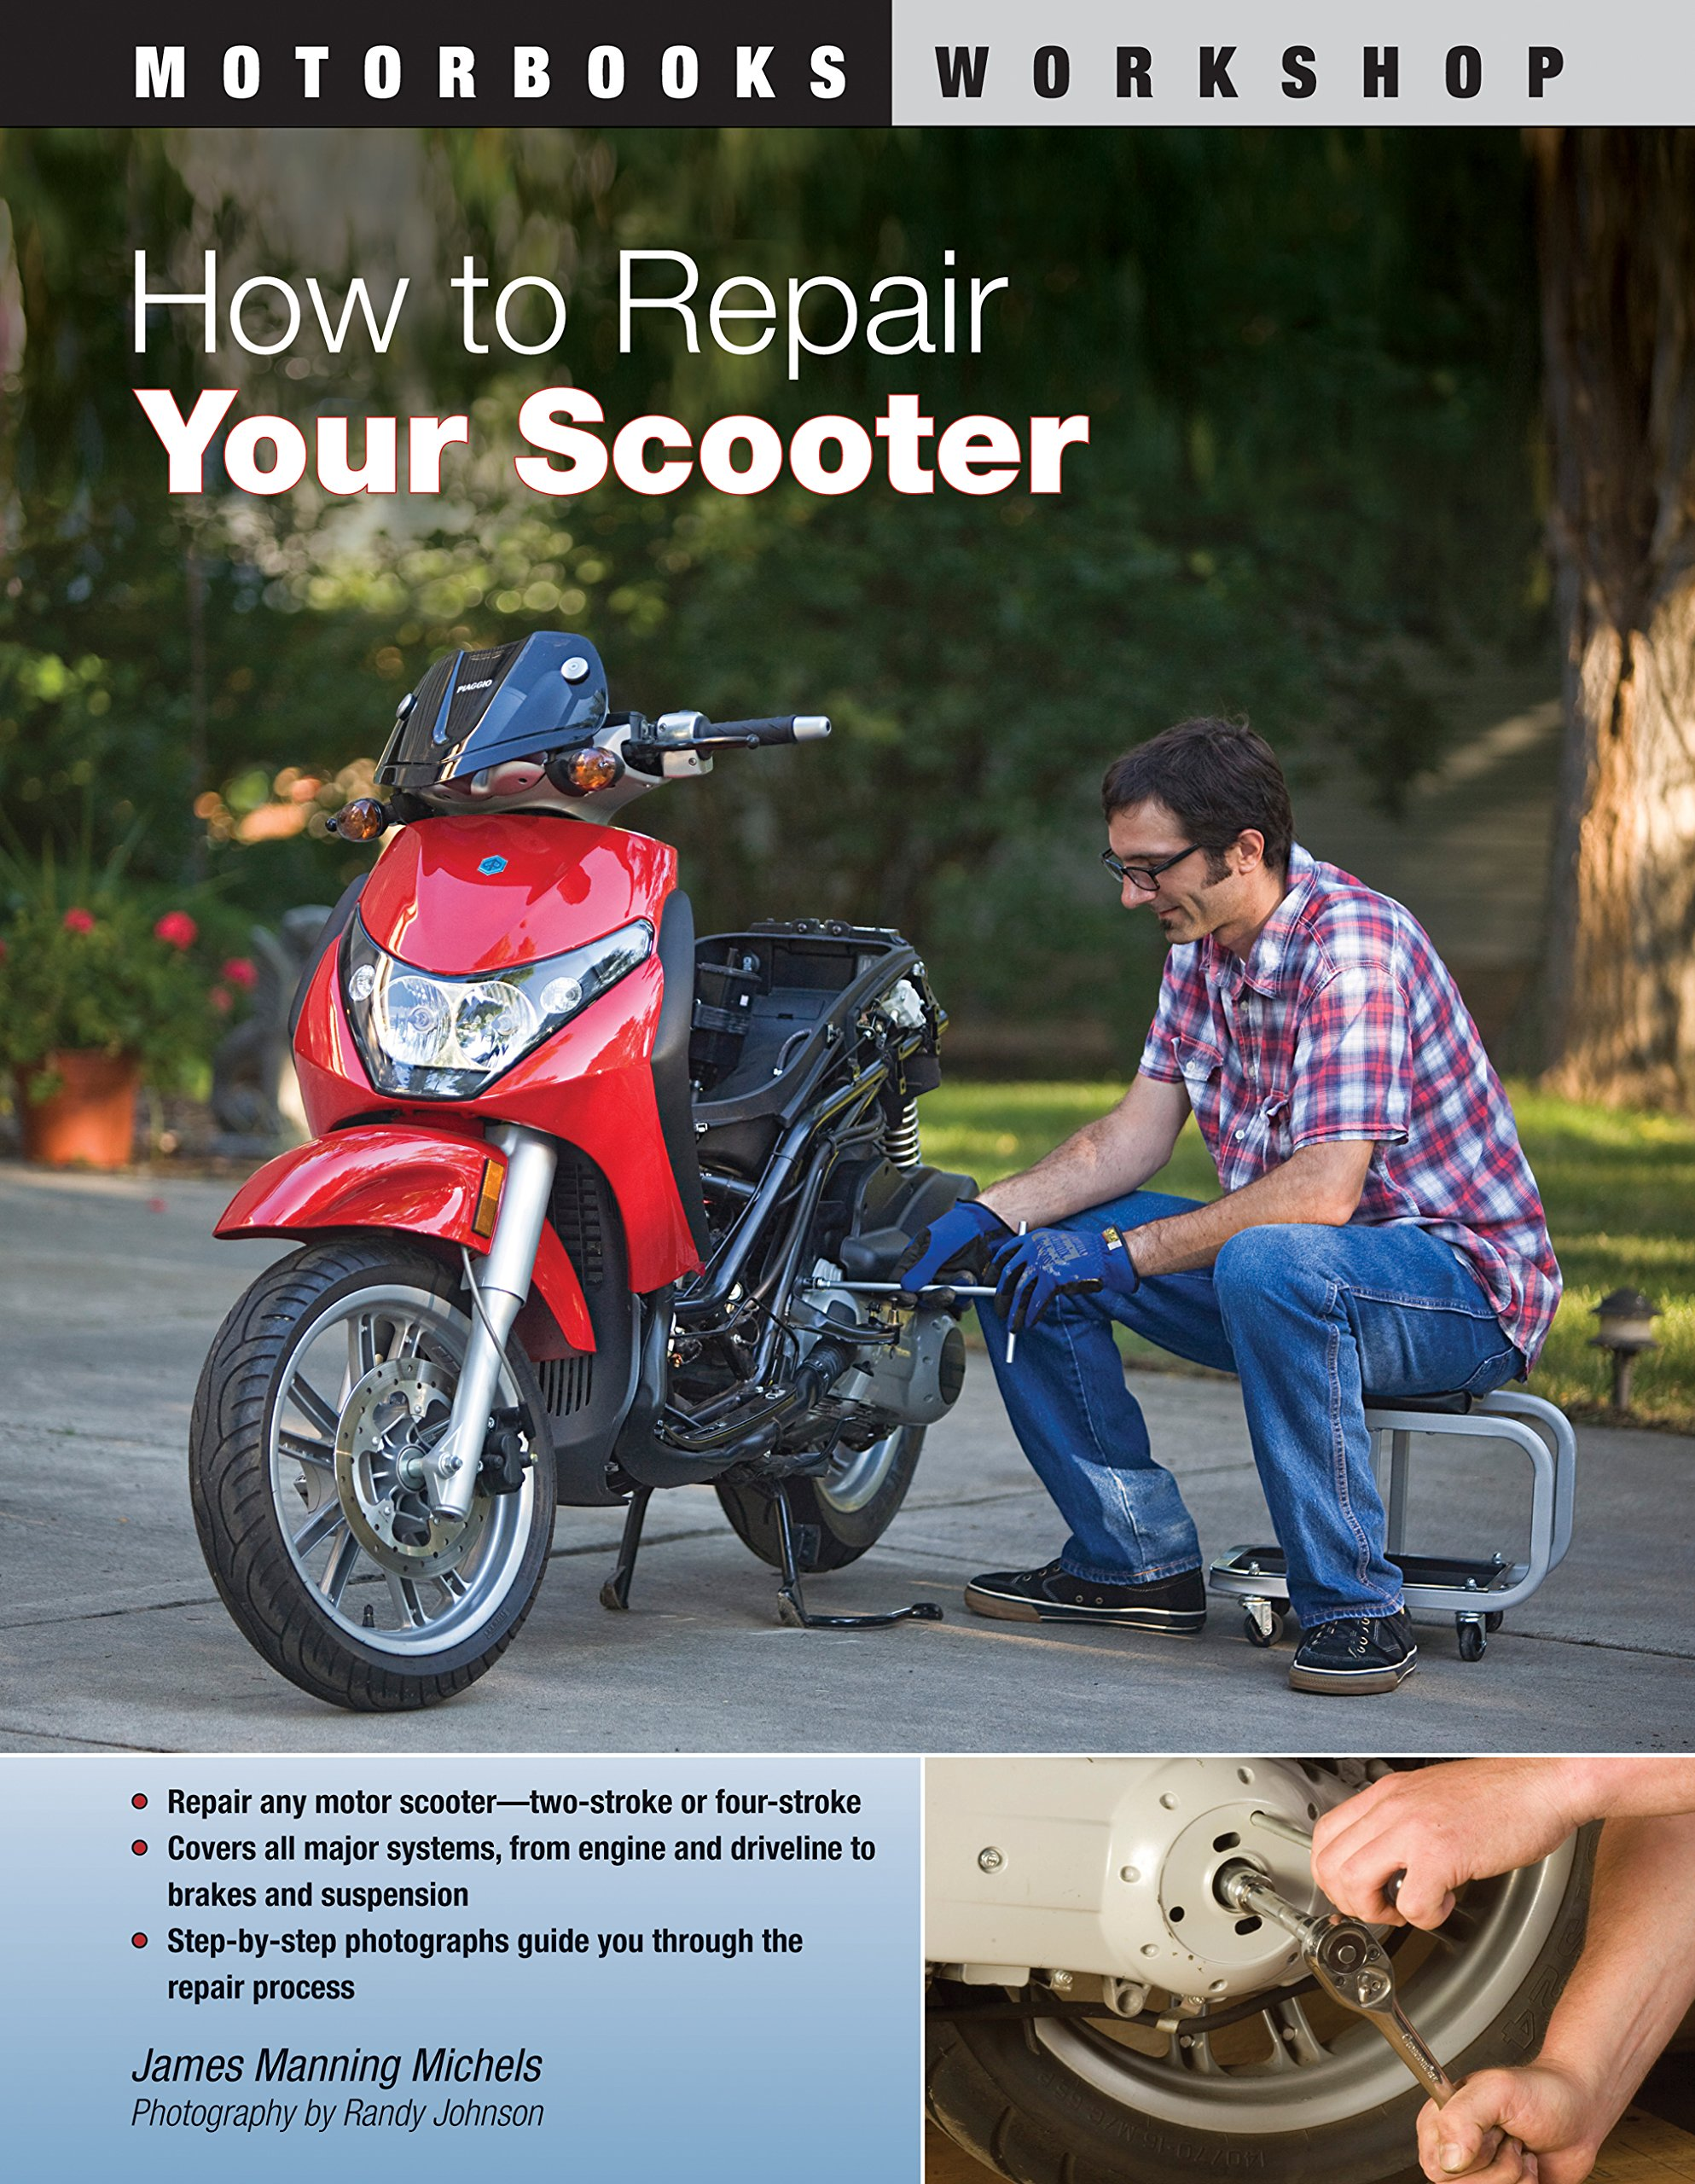 How to Repair Your Scooter (Motorbooks Workshop): James Manning Michels,  Randy Johnson: 9780760339862: Amazon.com: Books